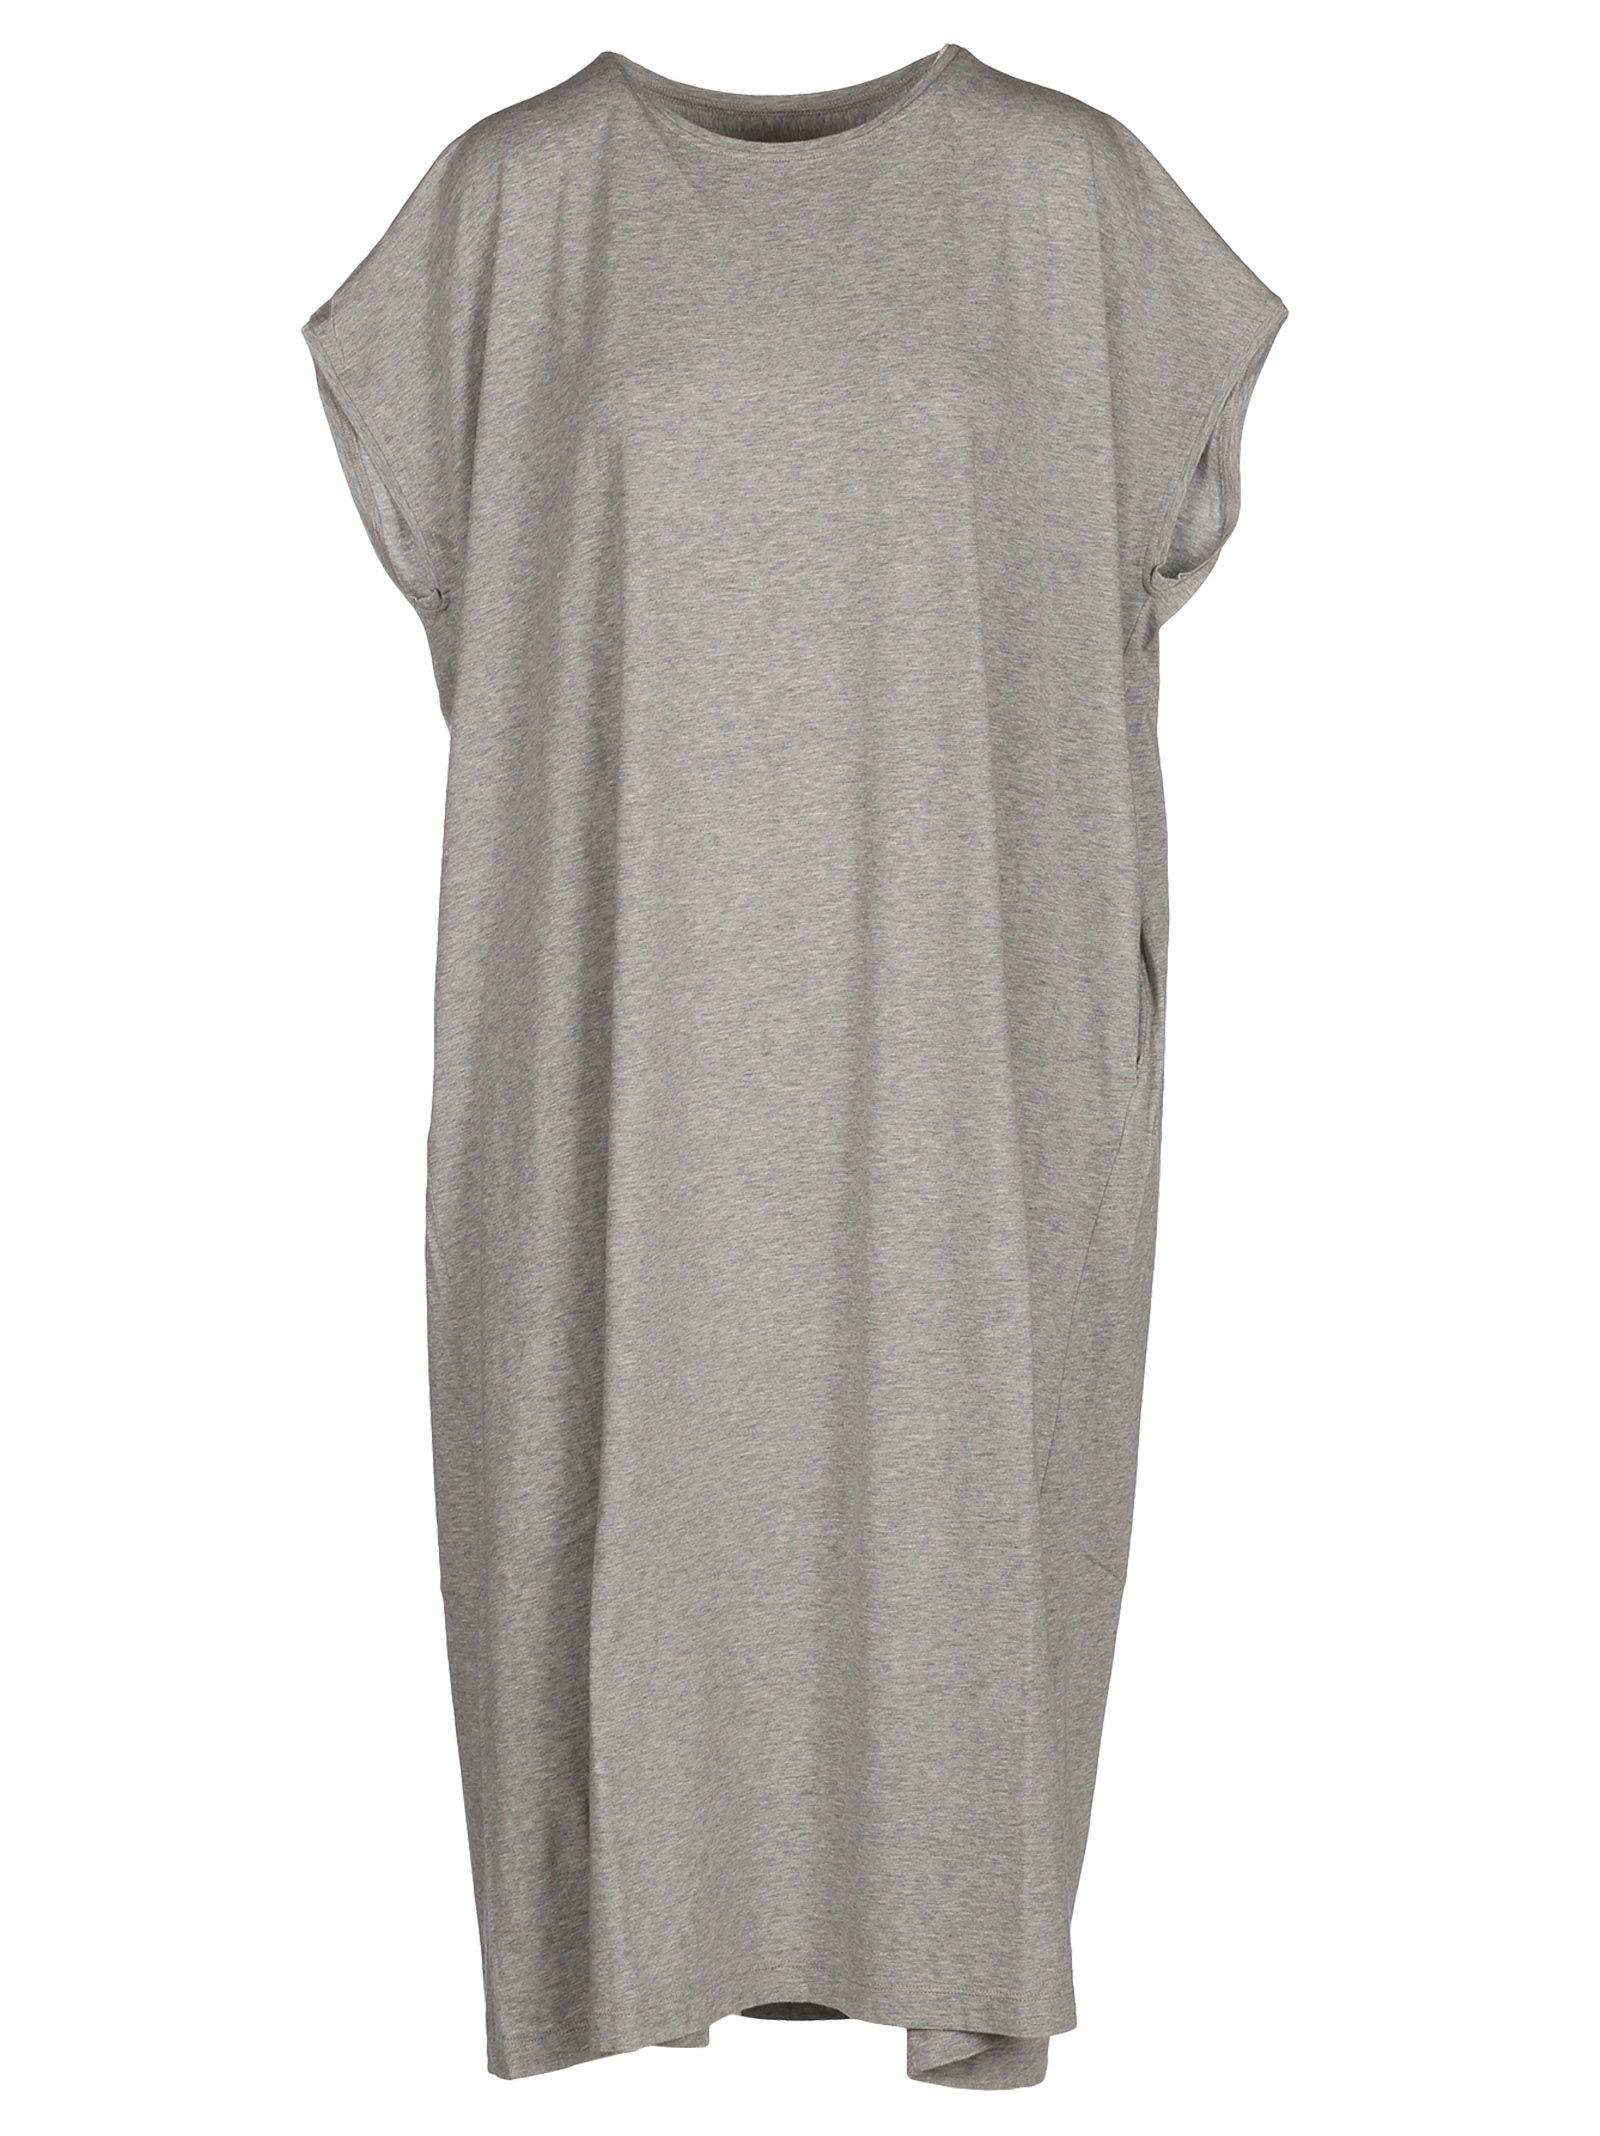 Mm6 Maison Margiela Oversize Dress In Grey Melange